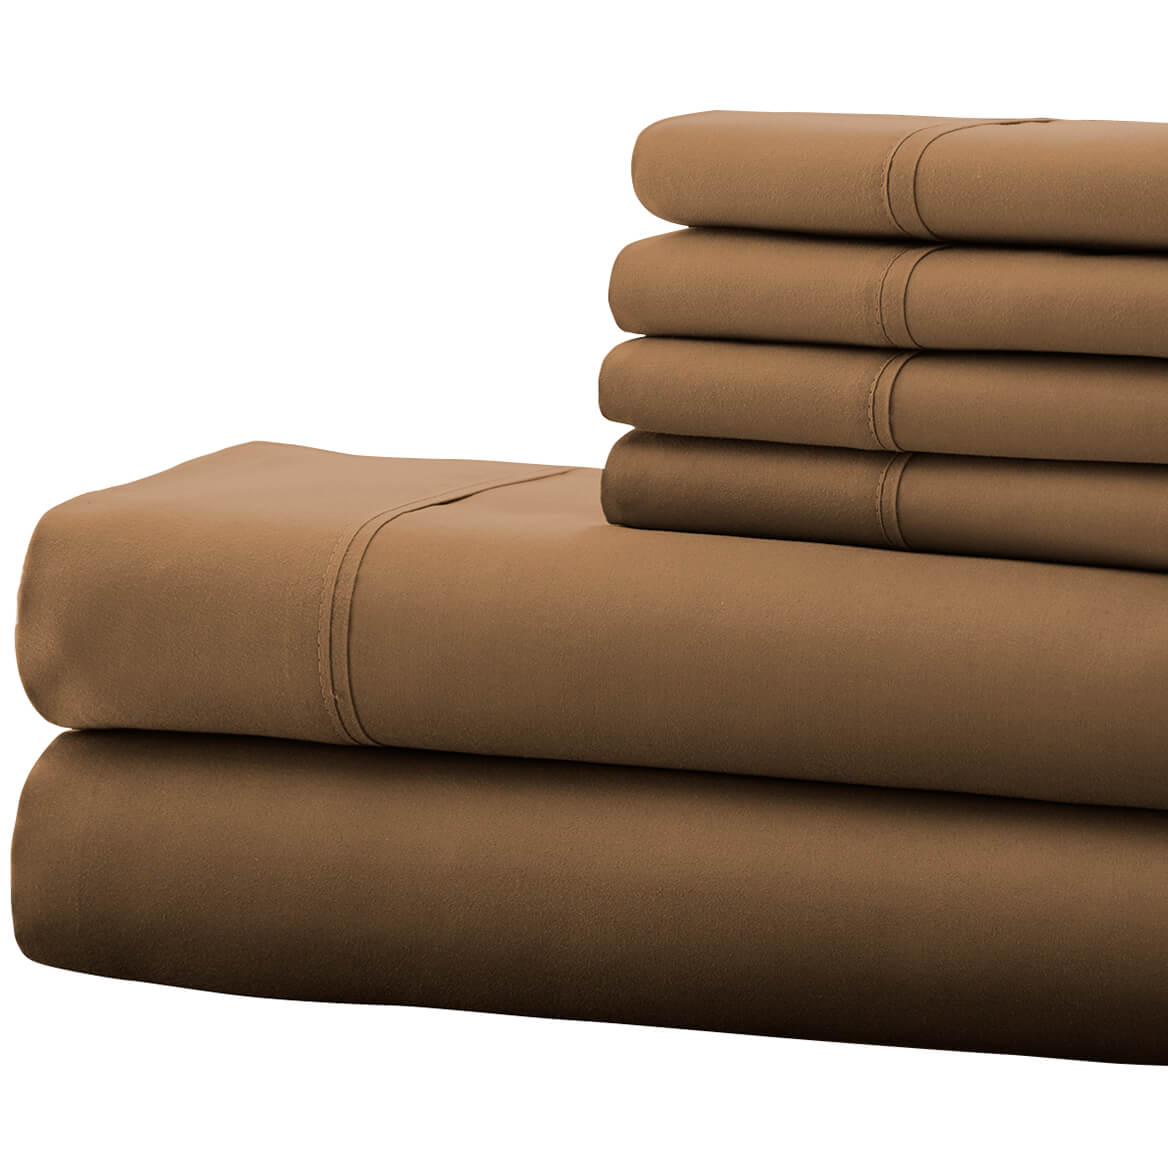 Hotel 5th Ave 4pc Microfiber Sheet Set - Taupe